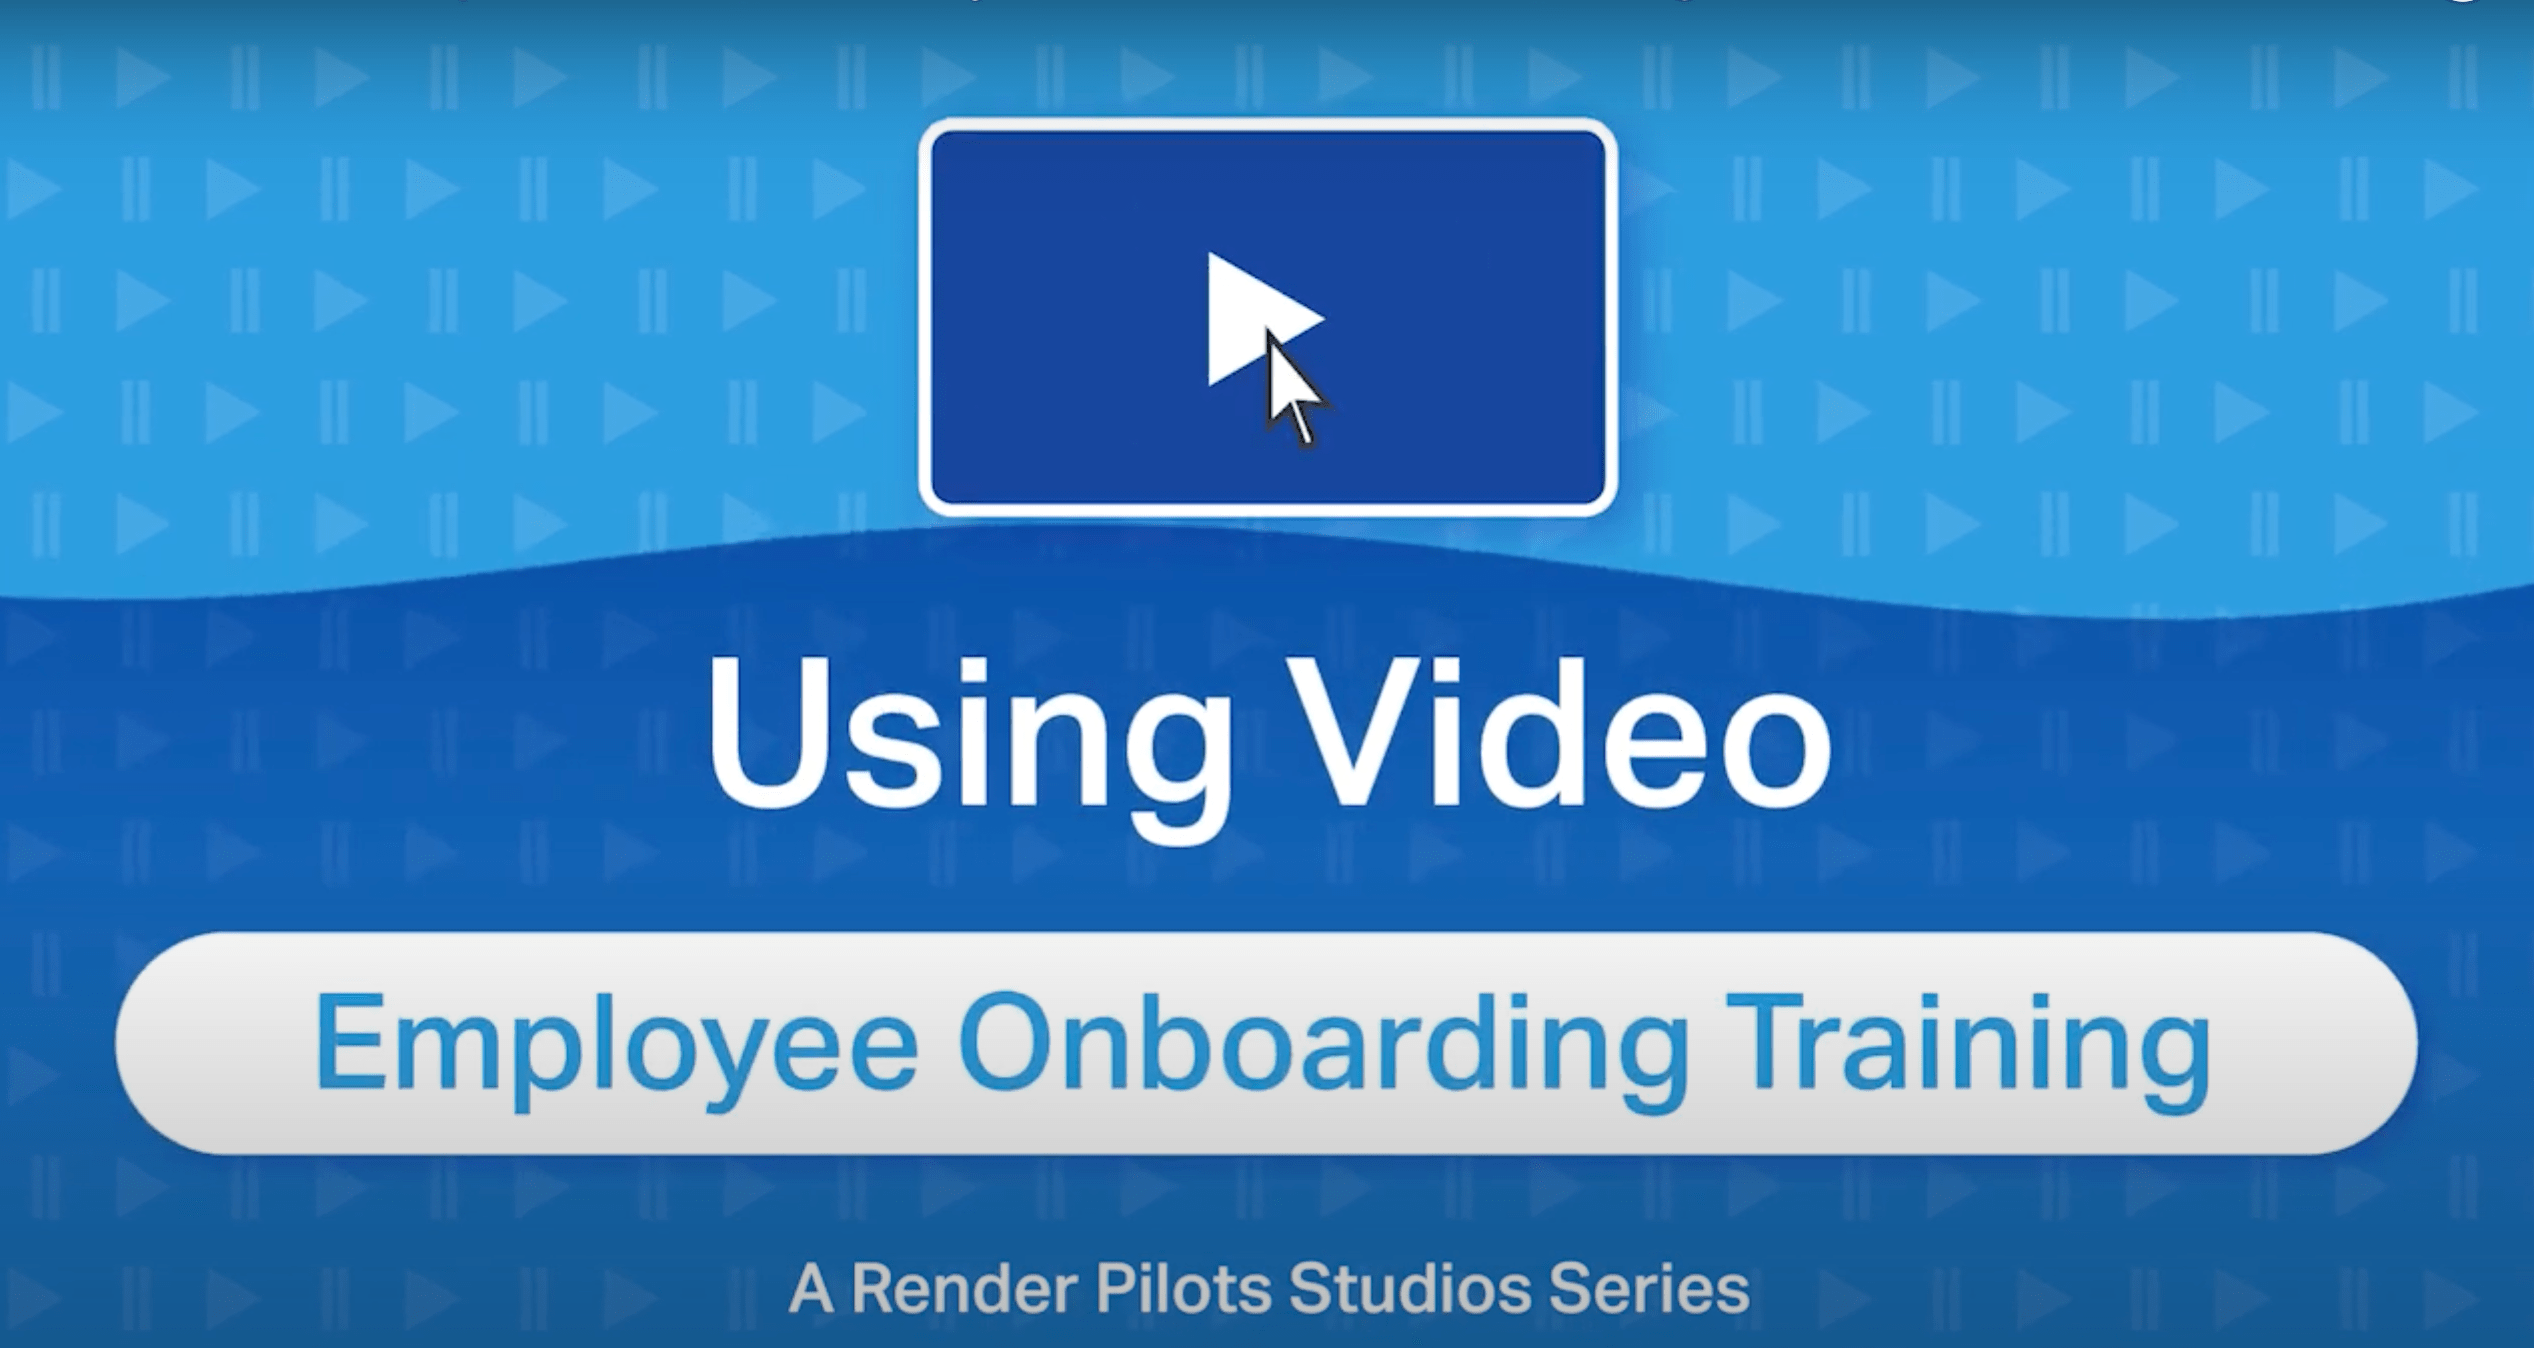 one minute with an expert video series by render pilots